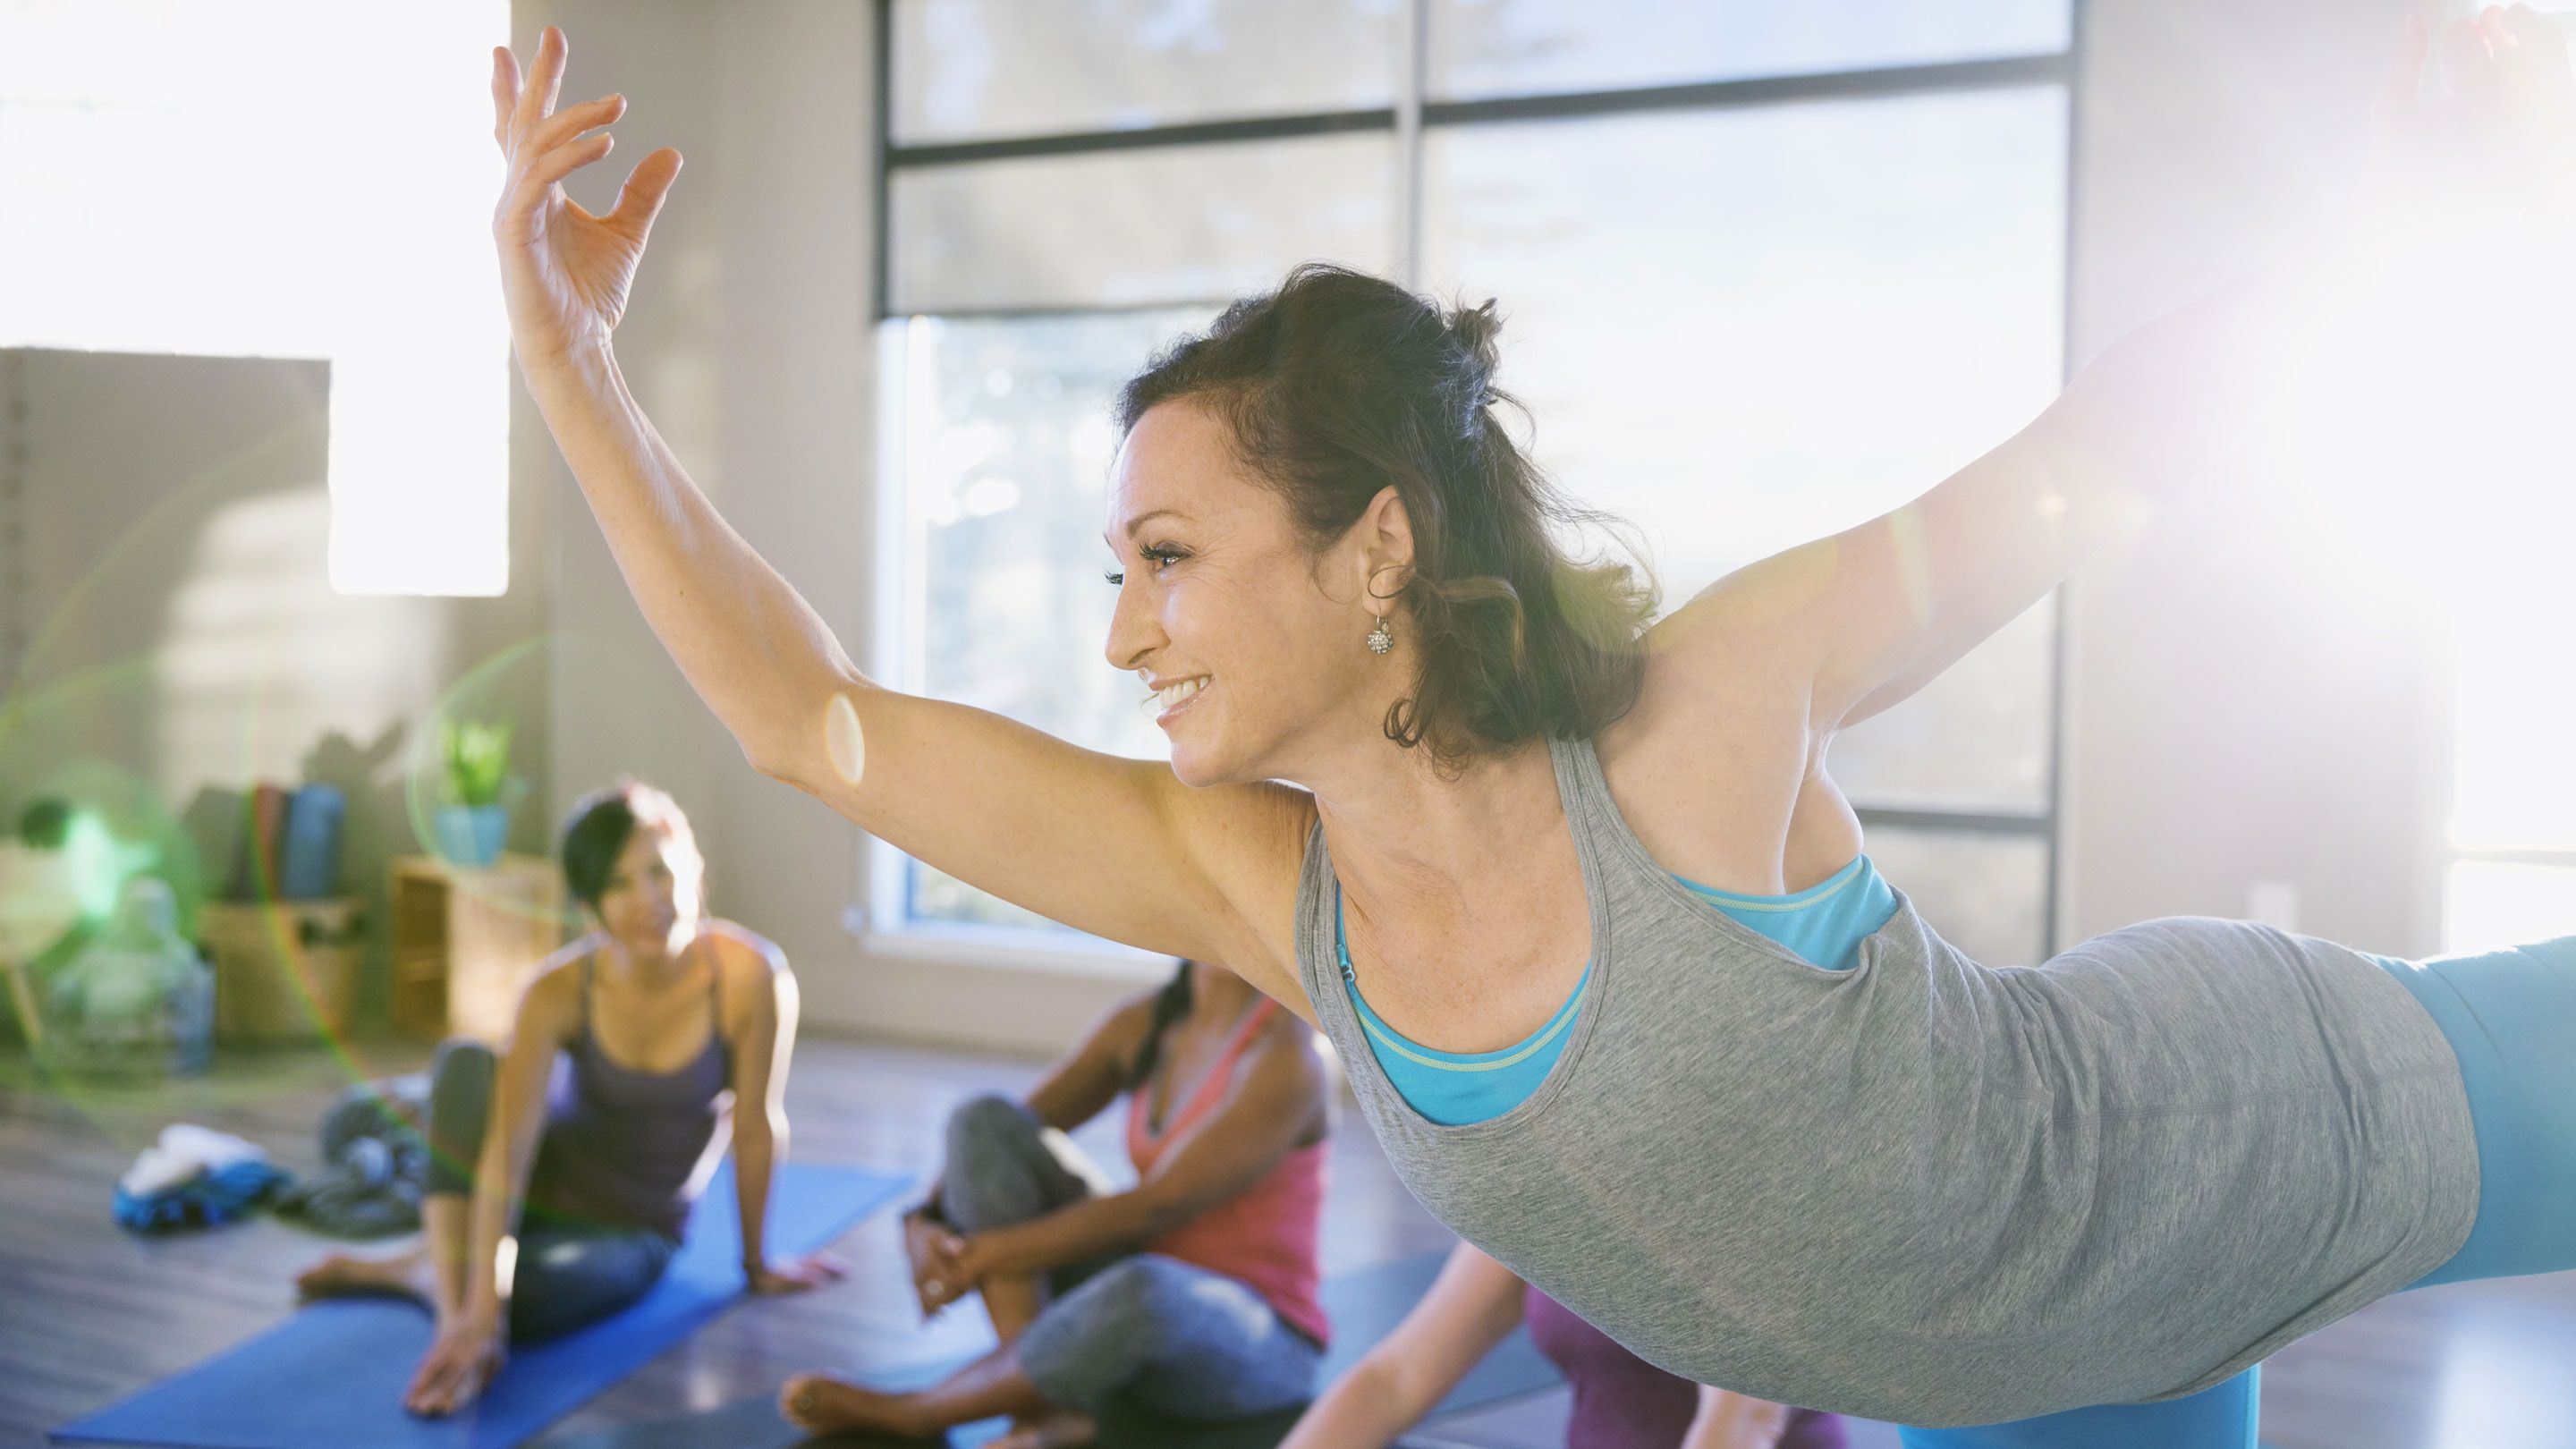 A smiling woman in a yoga class standing on one leg and both arms are extended.